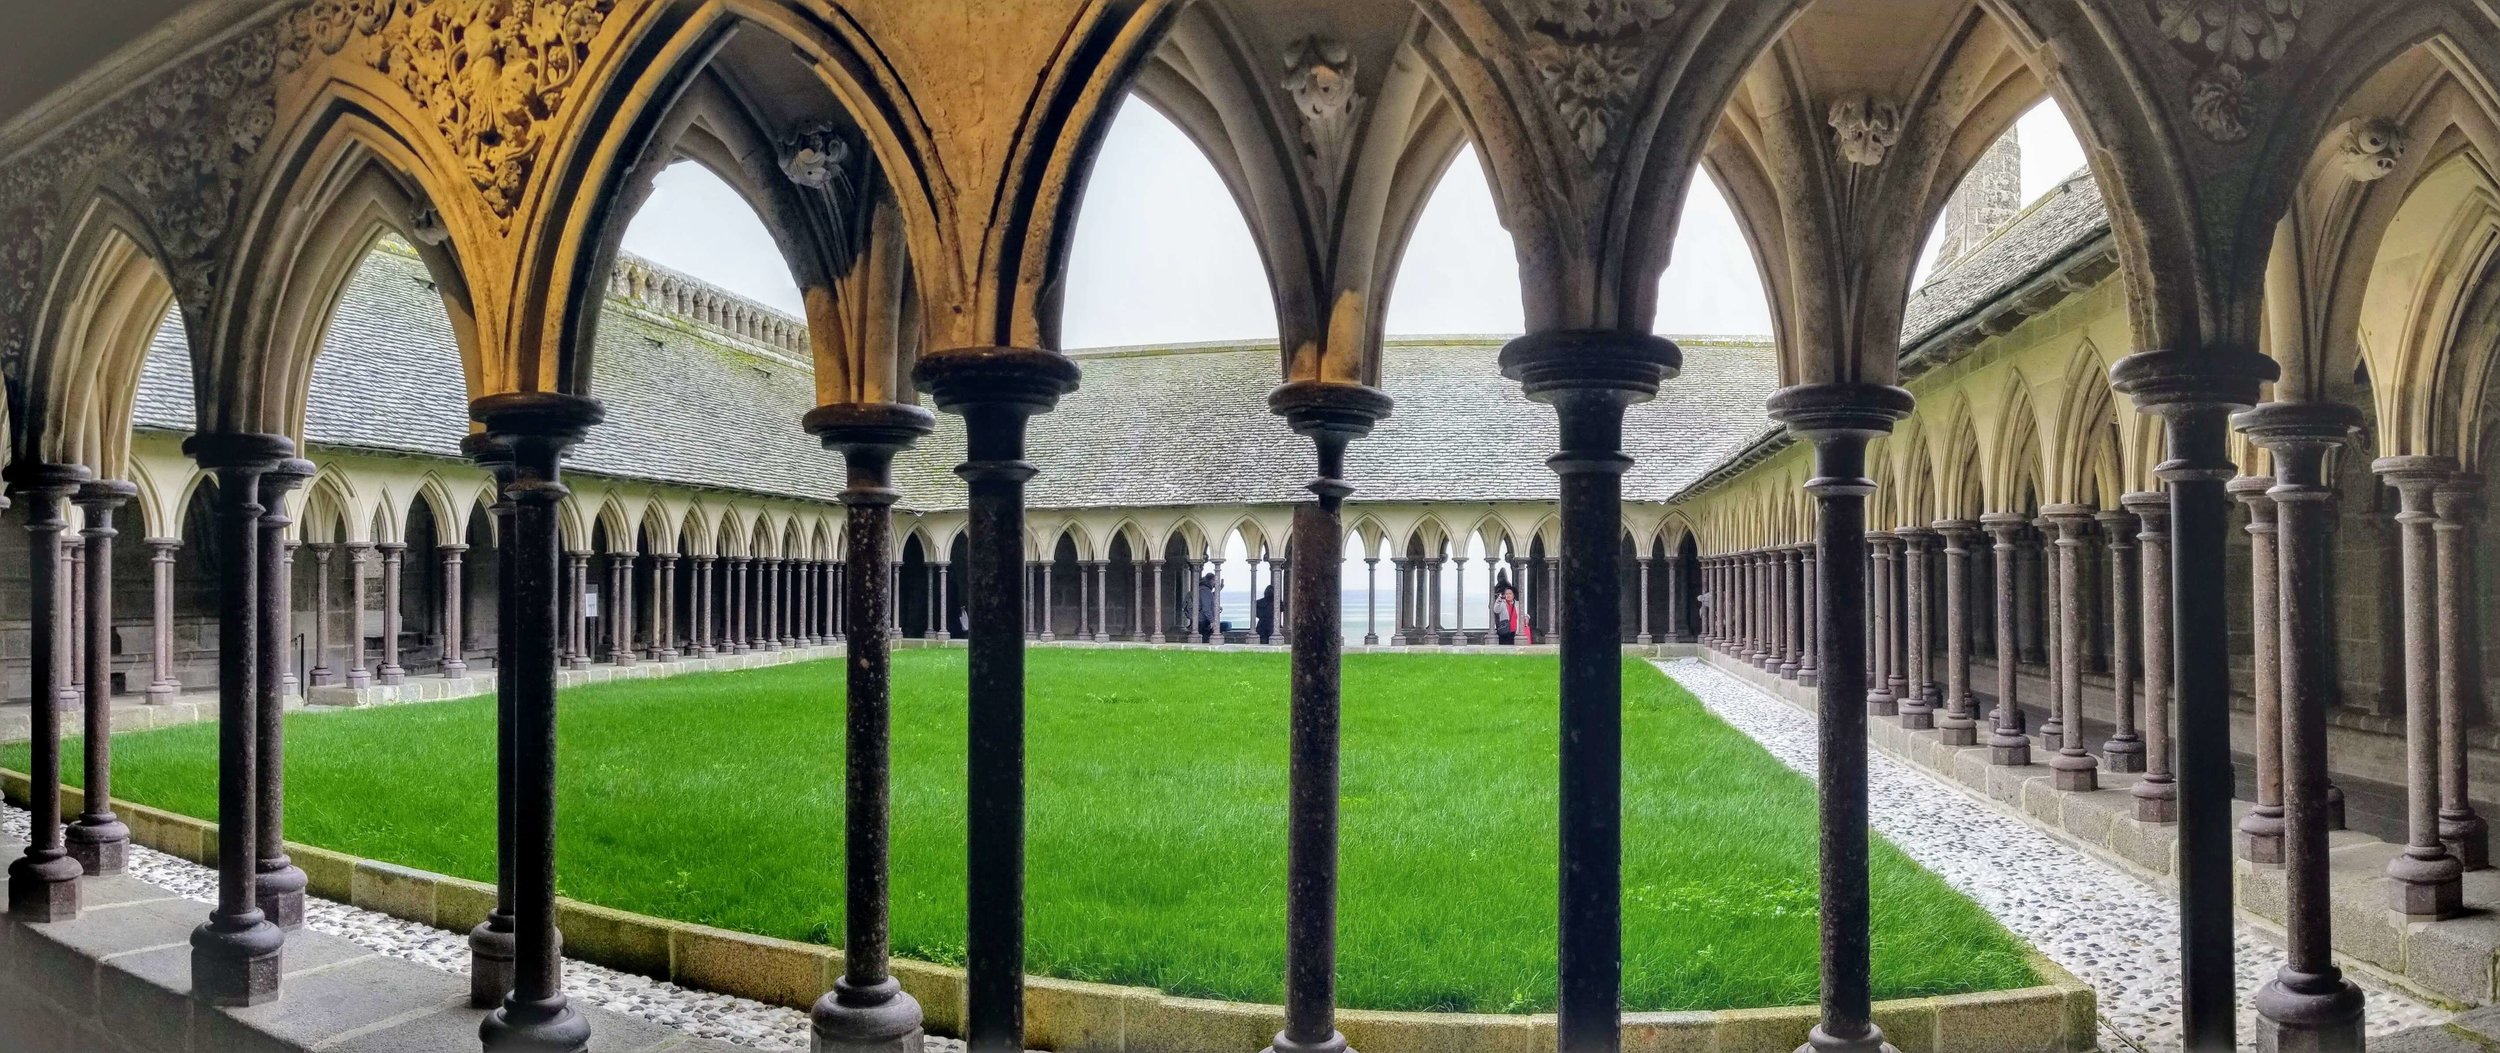 Courtyard inside the Abbey of Mont St. Michel